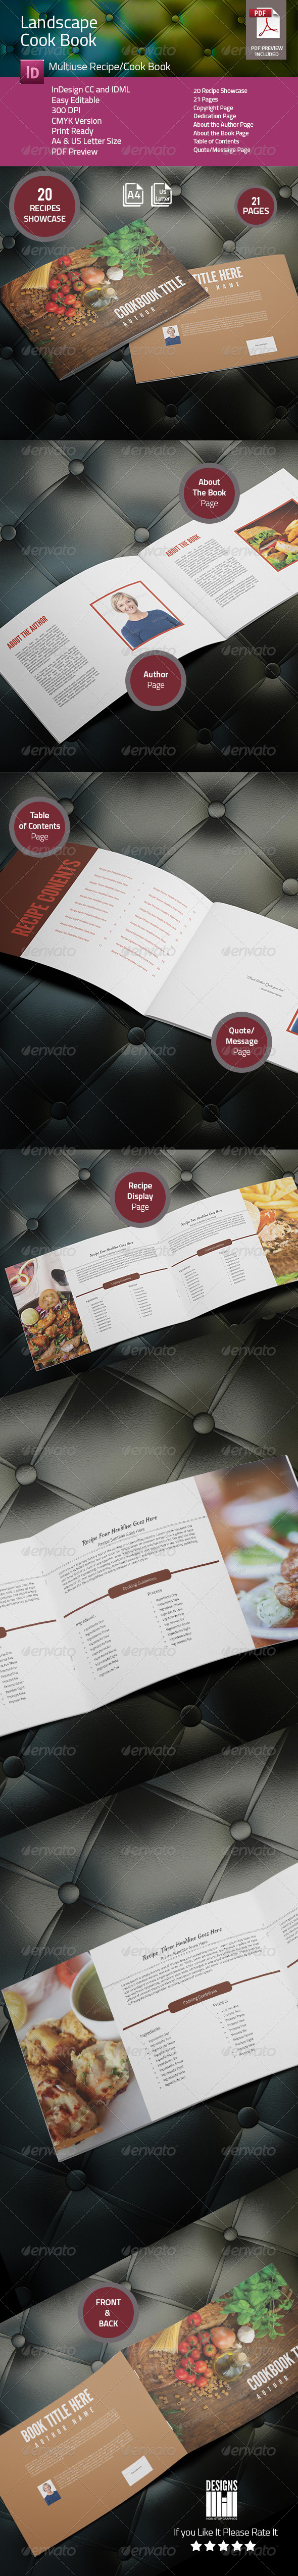 GraphicRiver Landscape Cook Book 8215473